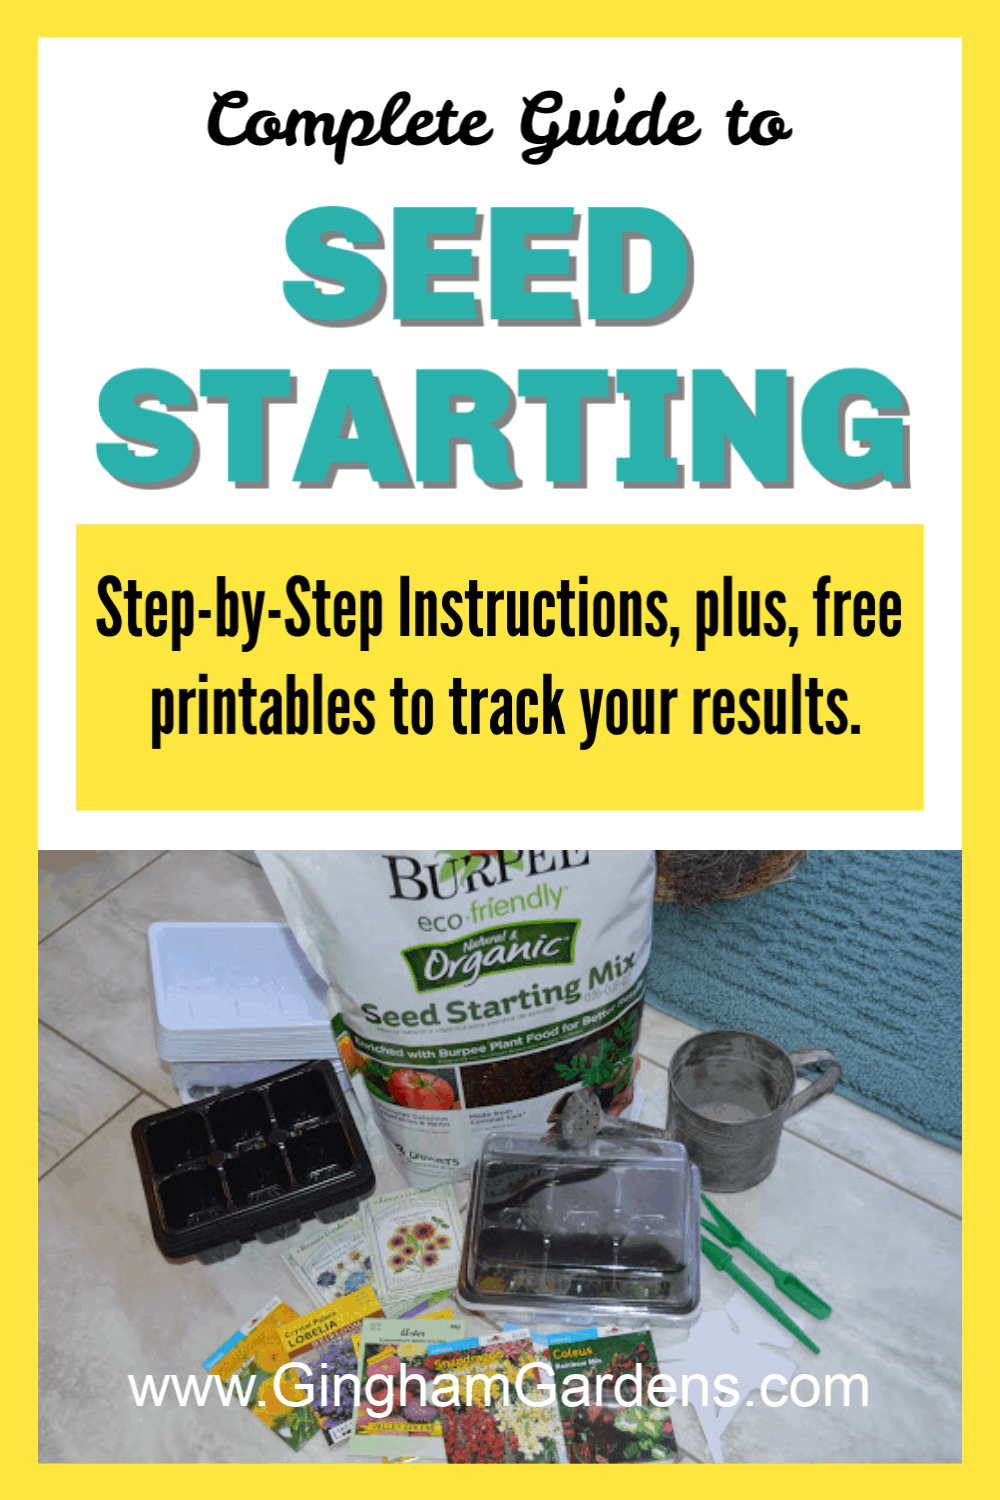 Seed Starting Supplies with Text Overlay - Seed Starting Step-by-Step Instructions